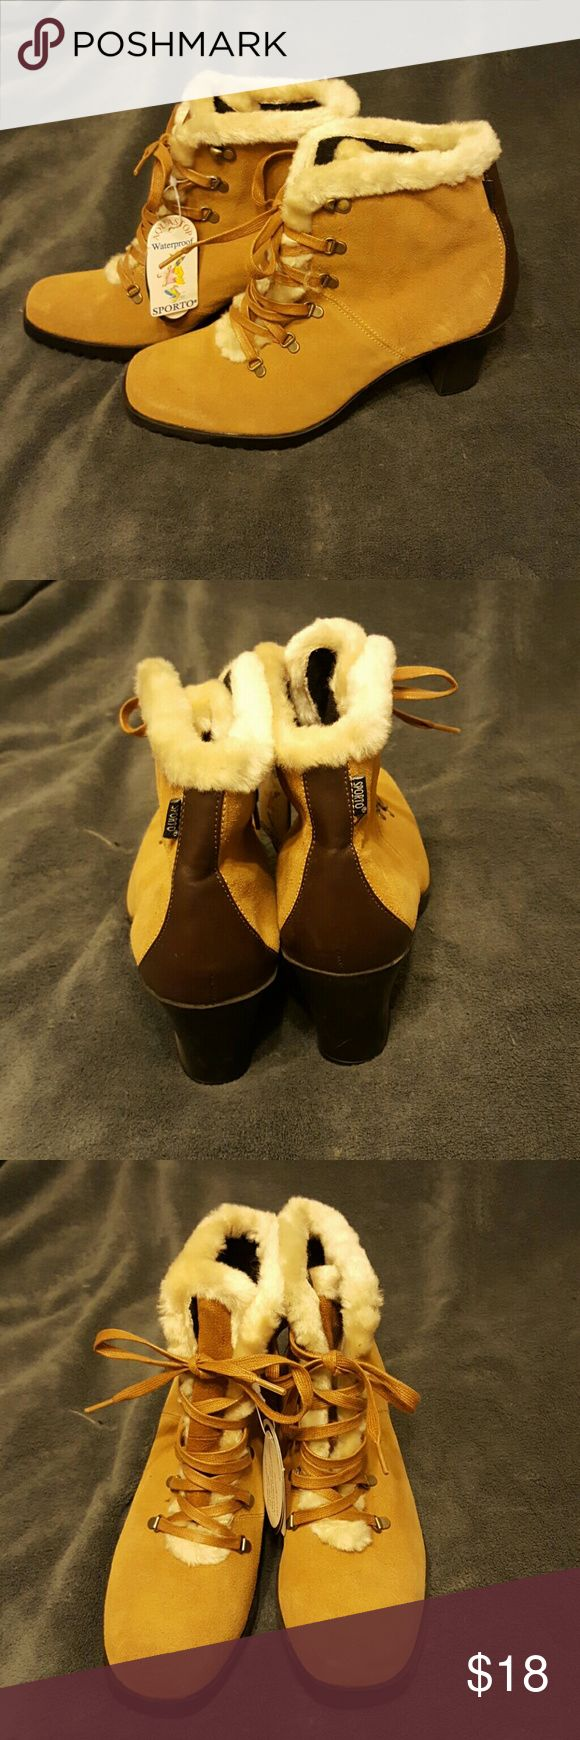 "Sporto boots, faux fur. Waterproof with Scotchgard NWT Sporto waterproof boots. Only thing ""wrong"" with them is where TJ Maxx wrote with a marker on the bottom and it smeared (as pictured) Sporto Shoes Ankle Boots & Booties"